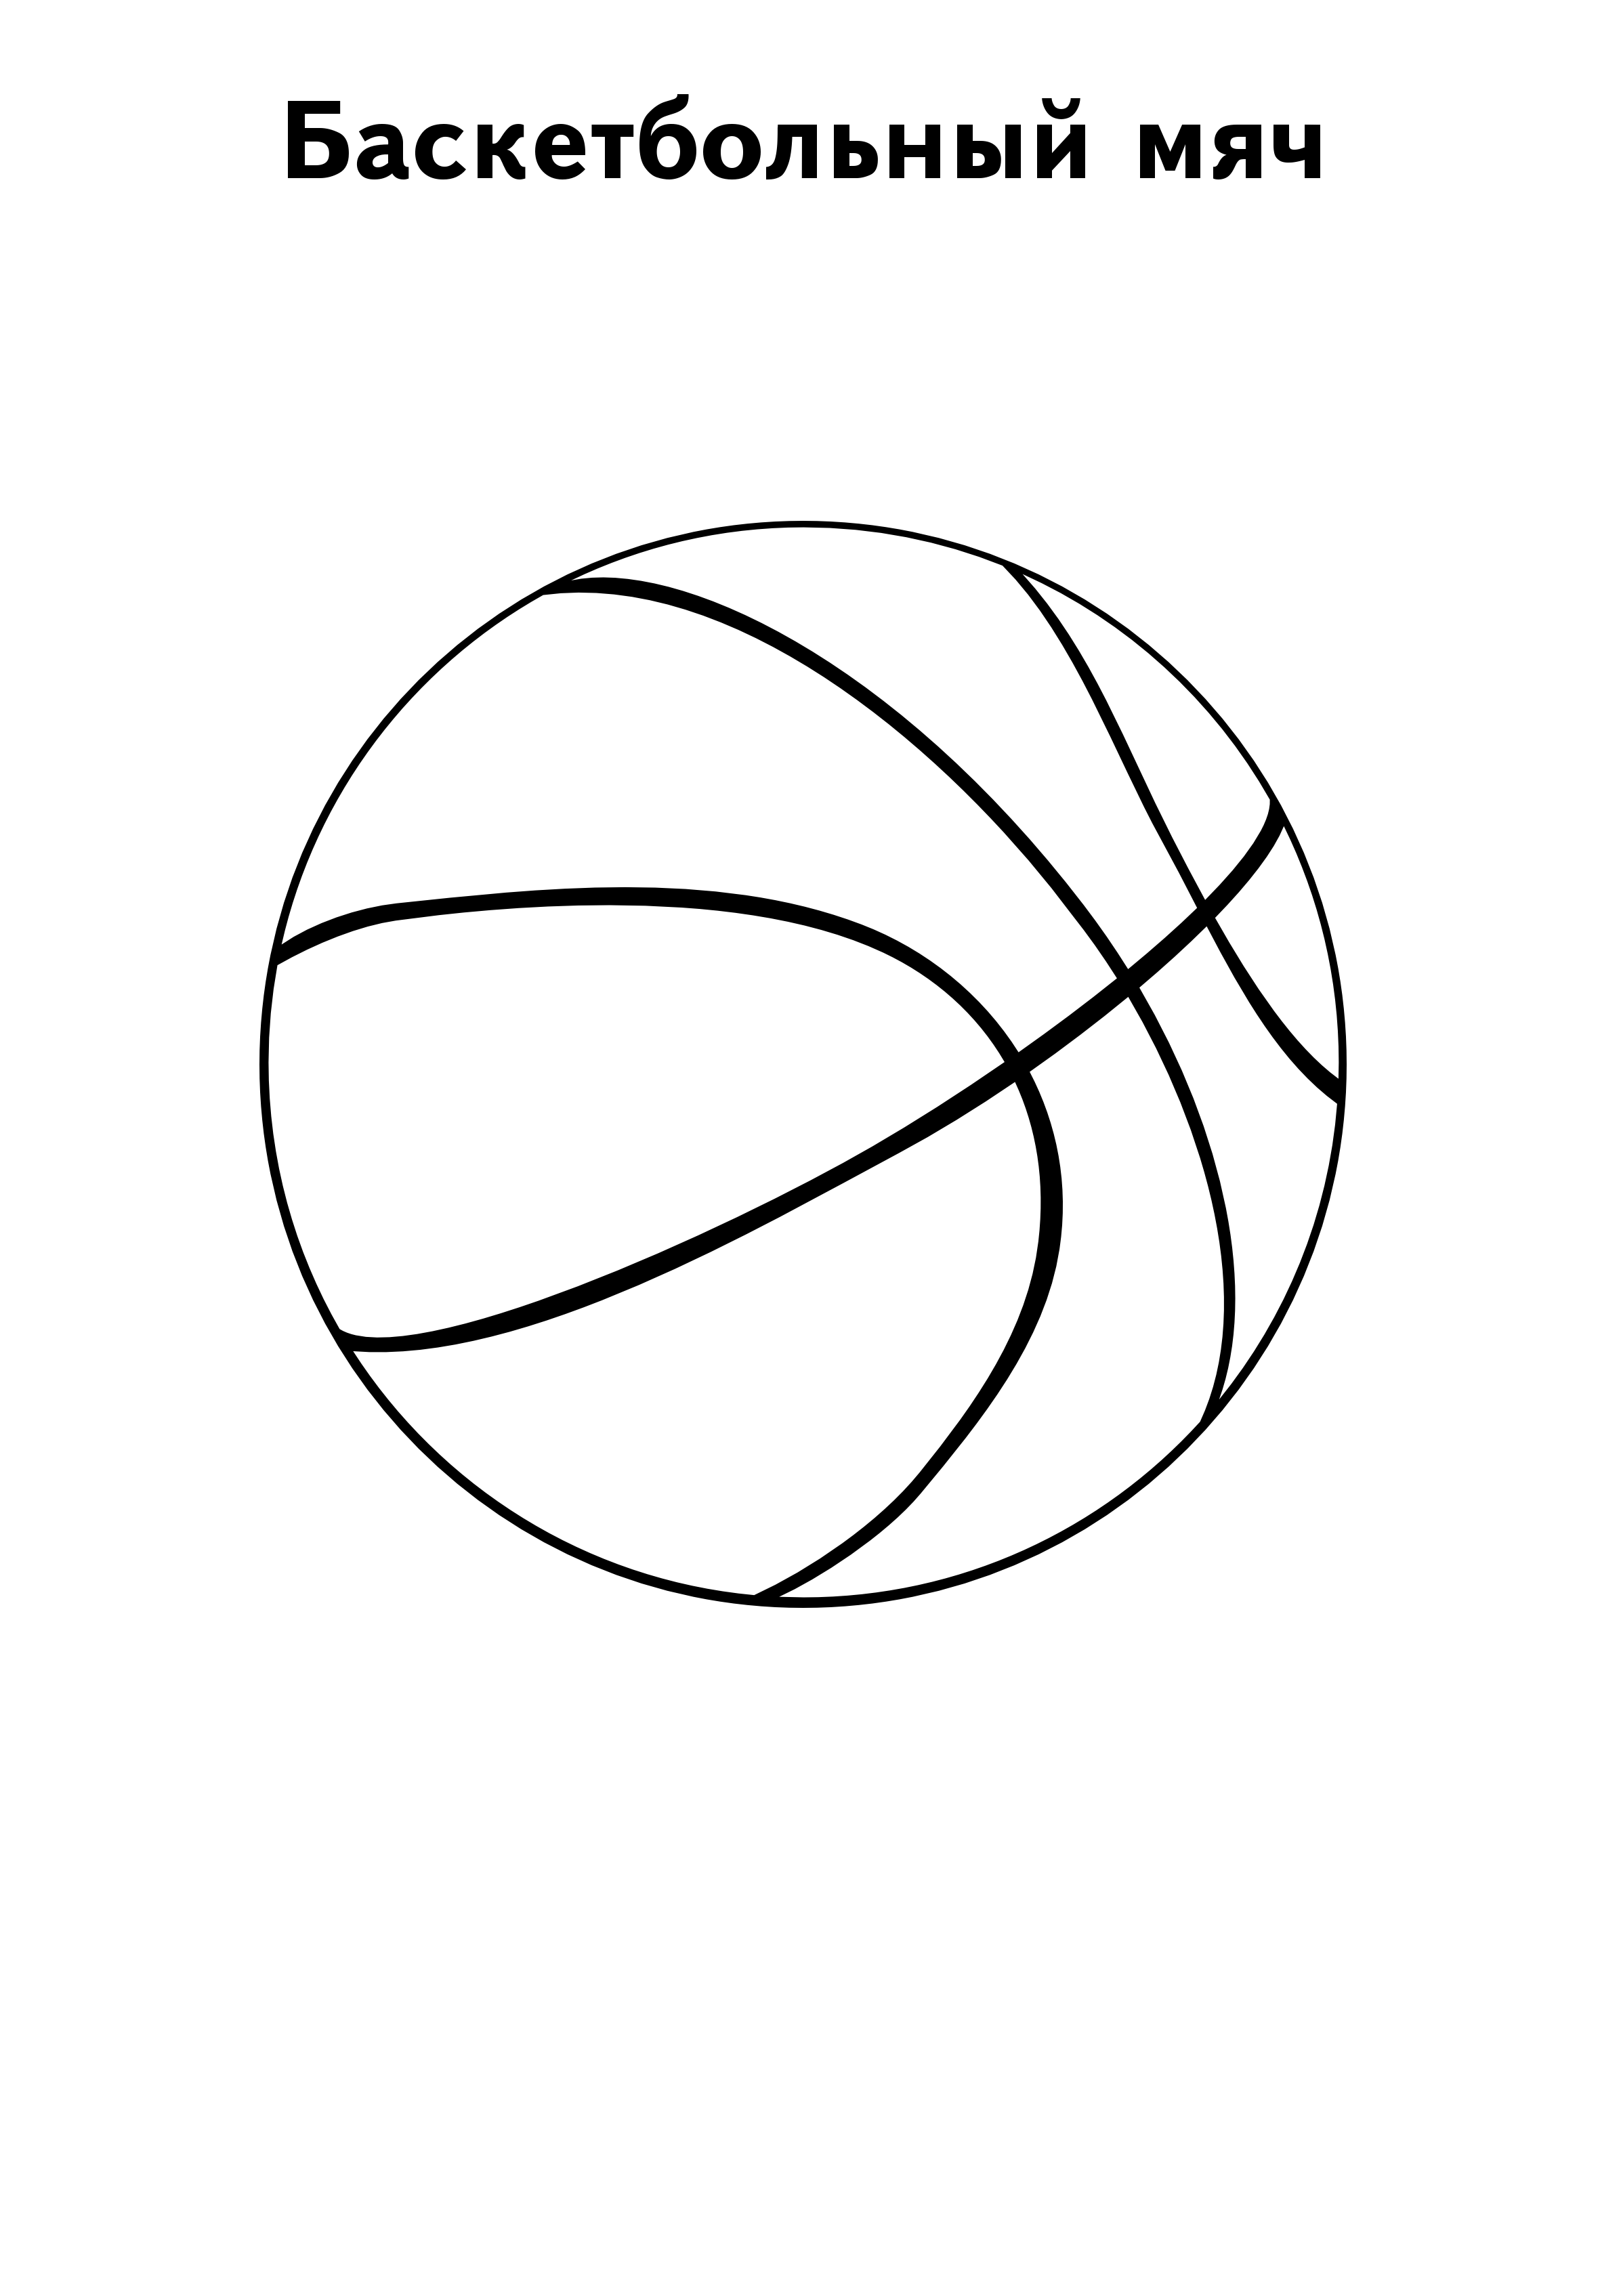 colouring pages of ball beach ball template beach ball coloring page free pages ball colouring of